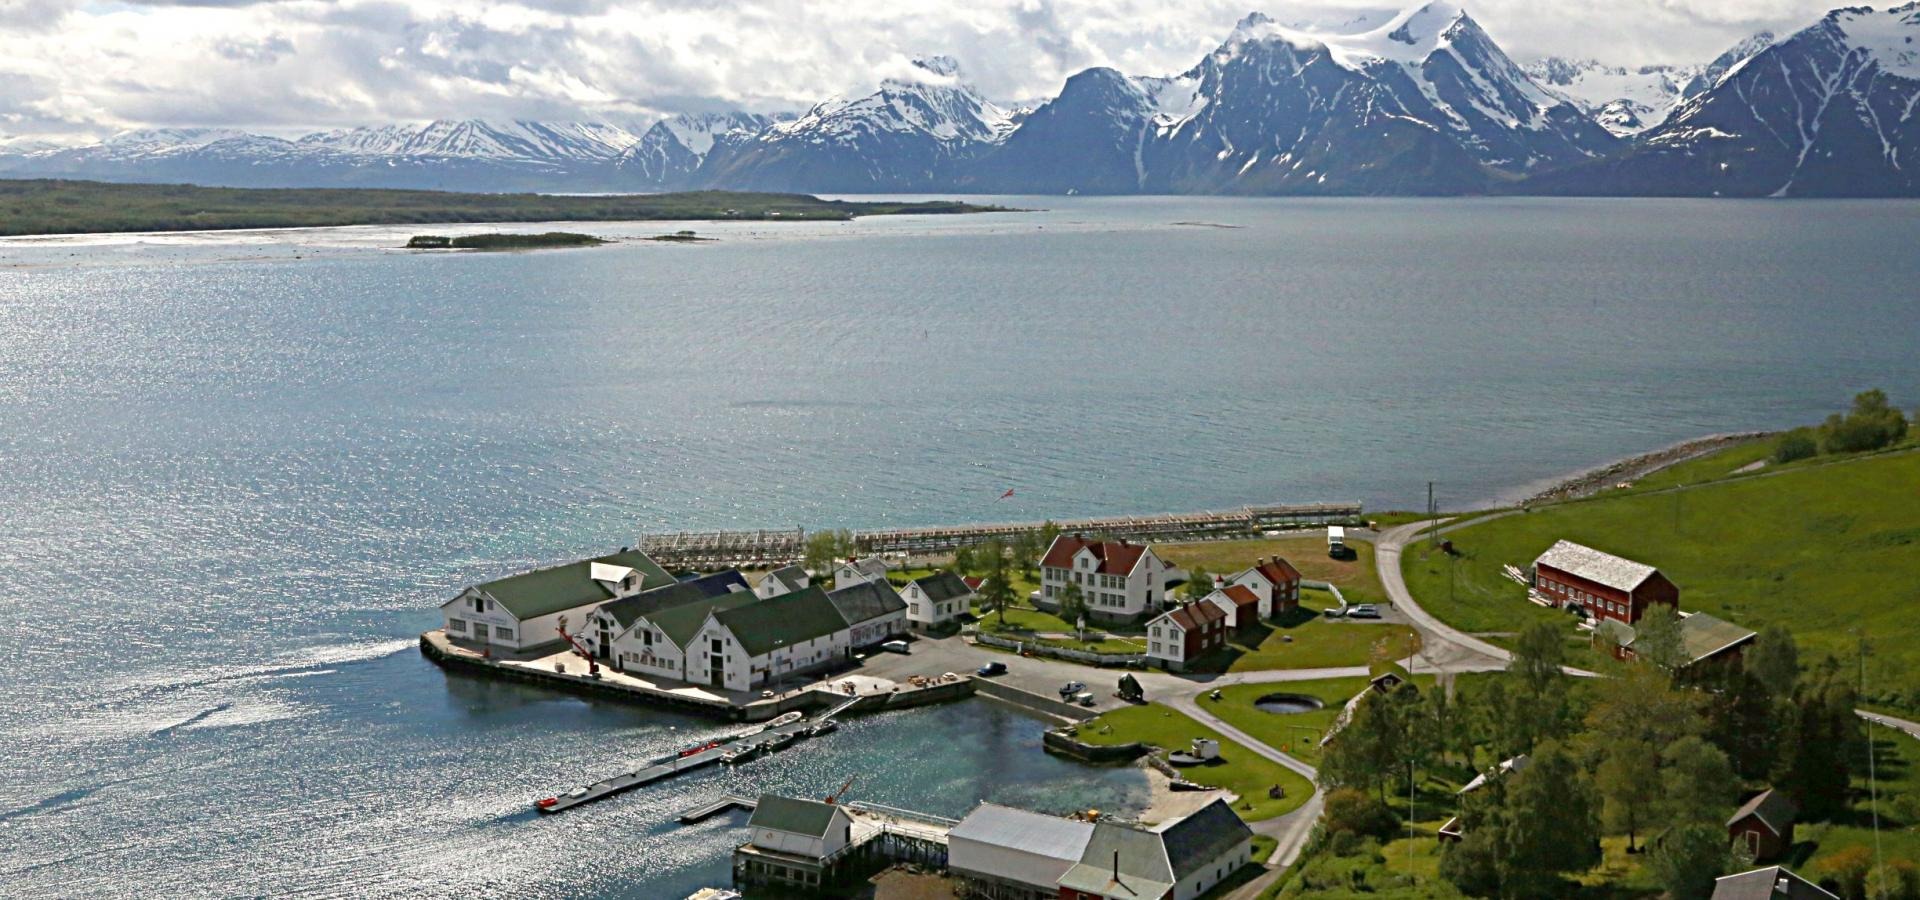 Aerial view of the trading post Havnnes Handelssted, with the fjord and Lyngen Alps in the background